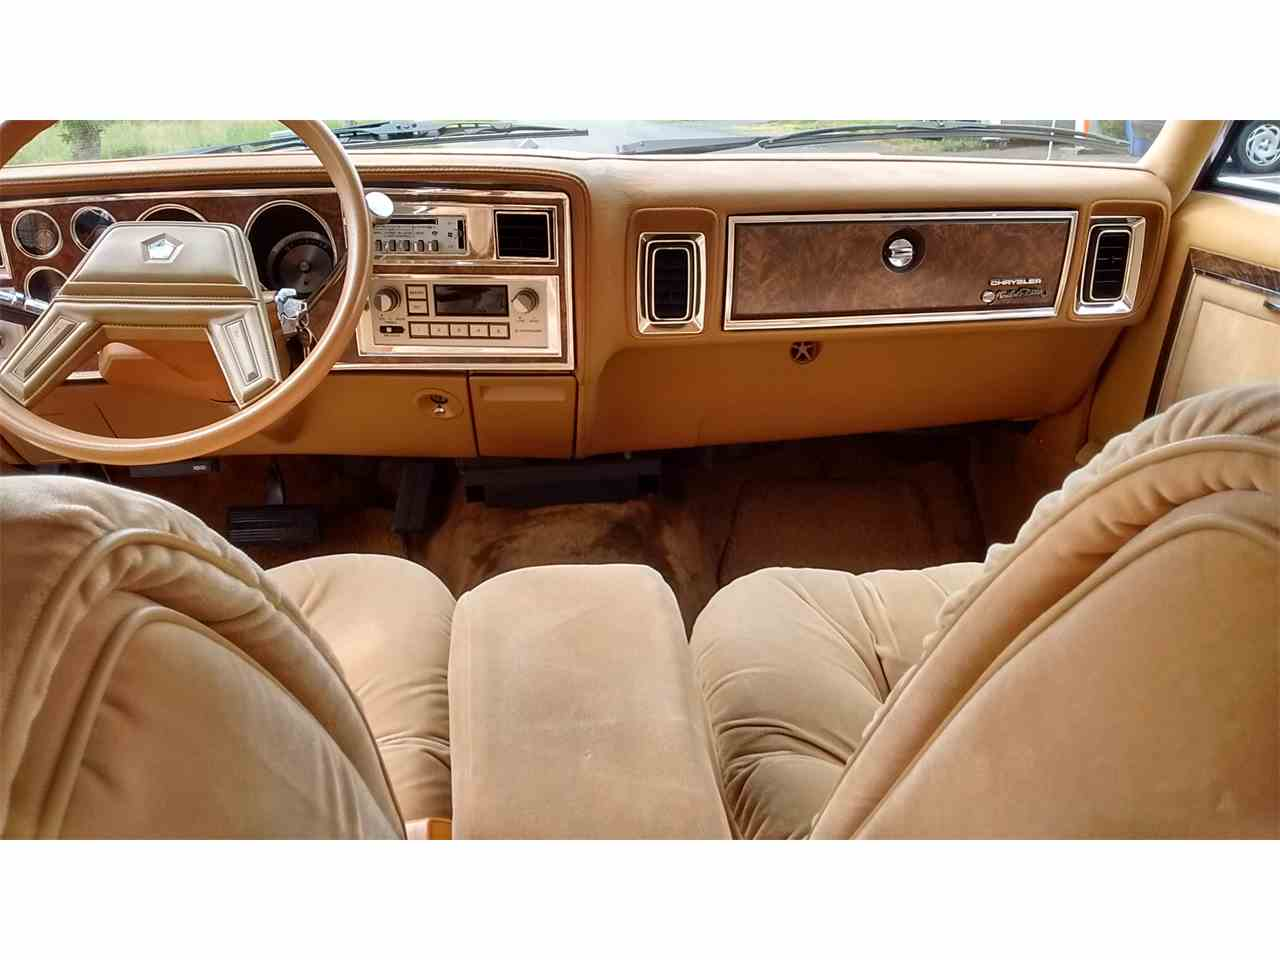 Large Picture of '85 Chrysler Fifth Avenue located in Washington - $4,800.00 Offered by a Private Seller - I6T1